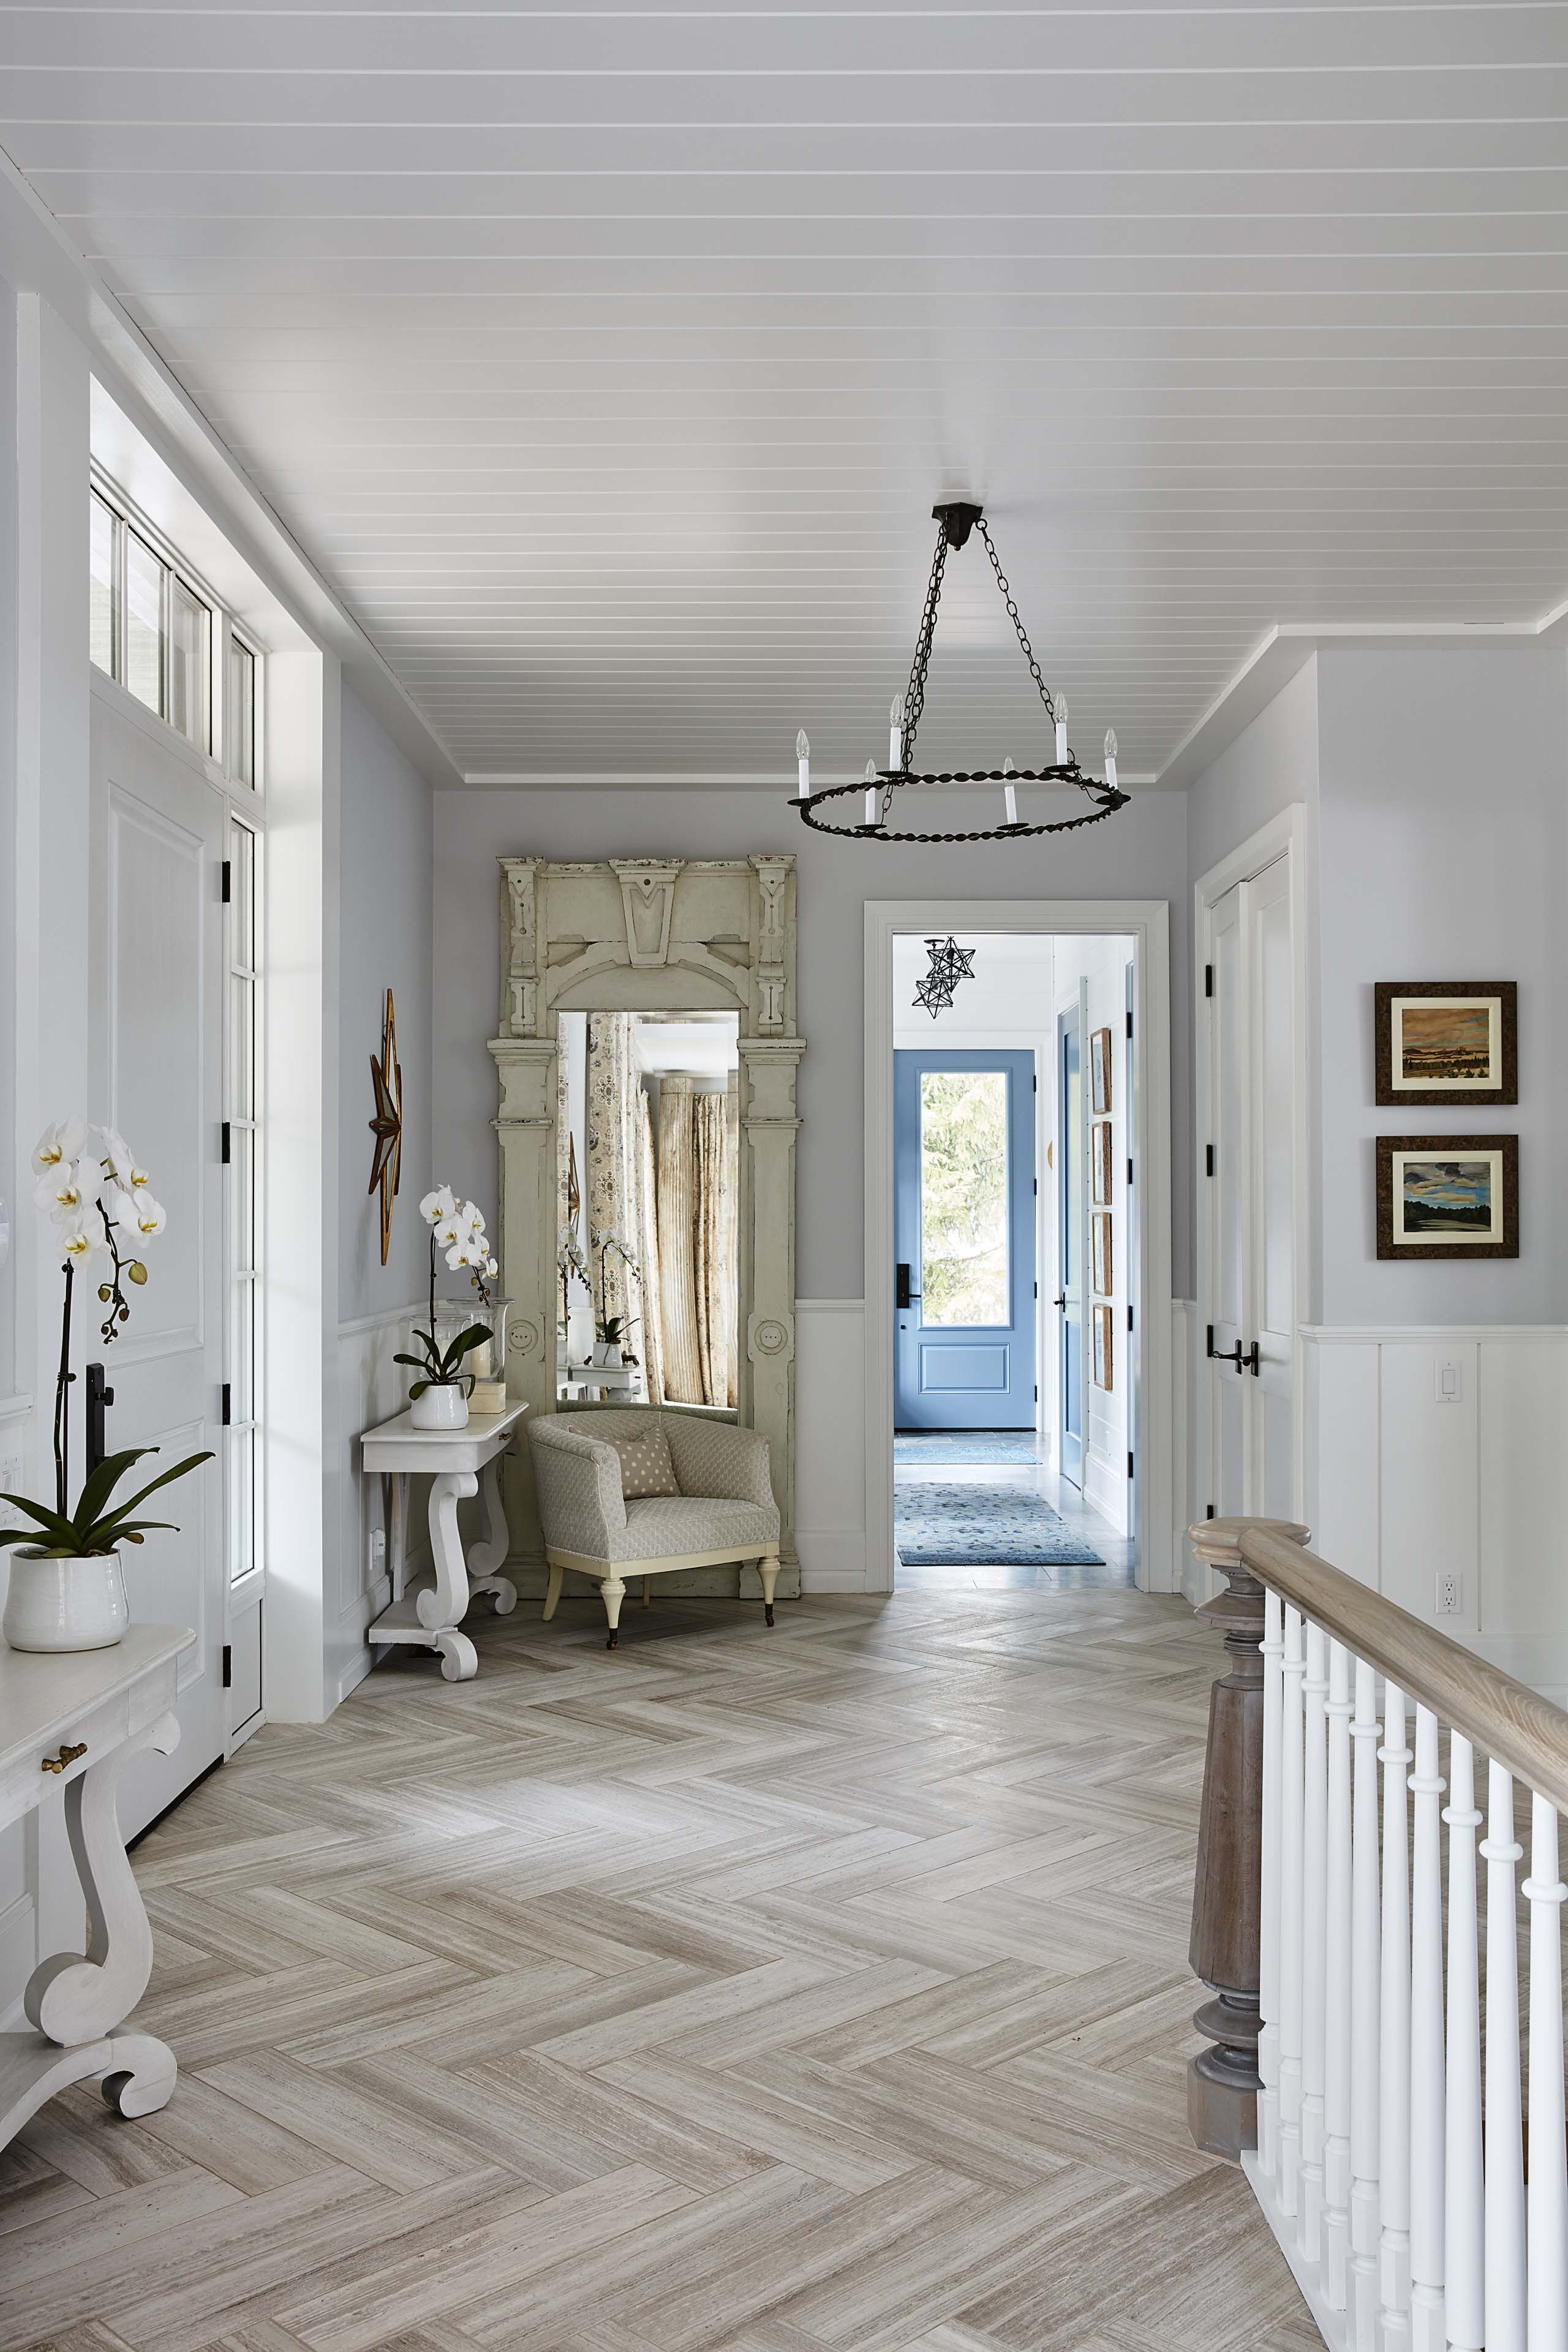 Small Room Off Foyer : Provence apartment interior design inspiration